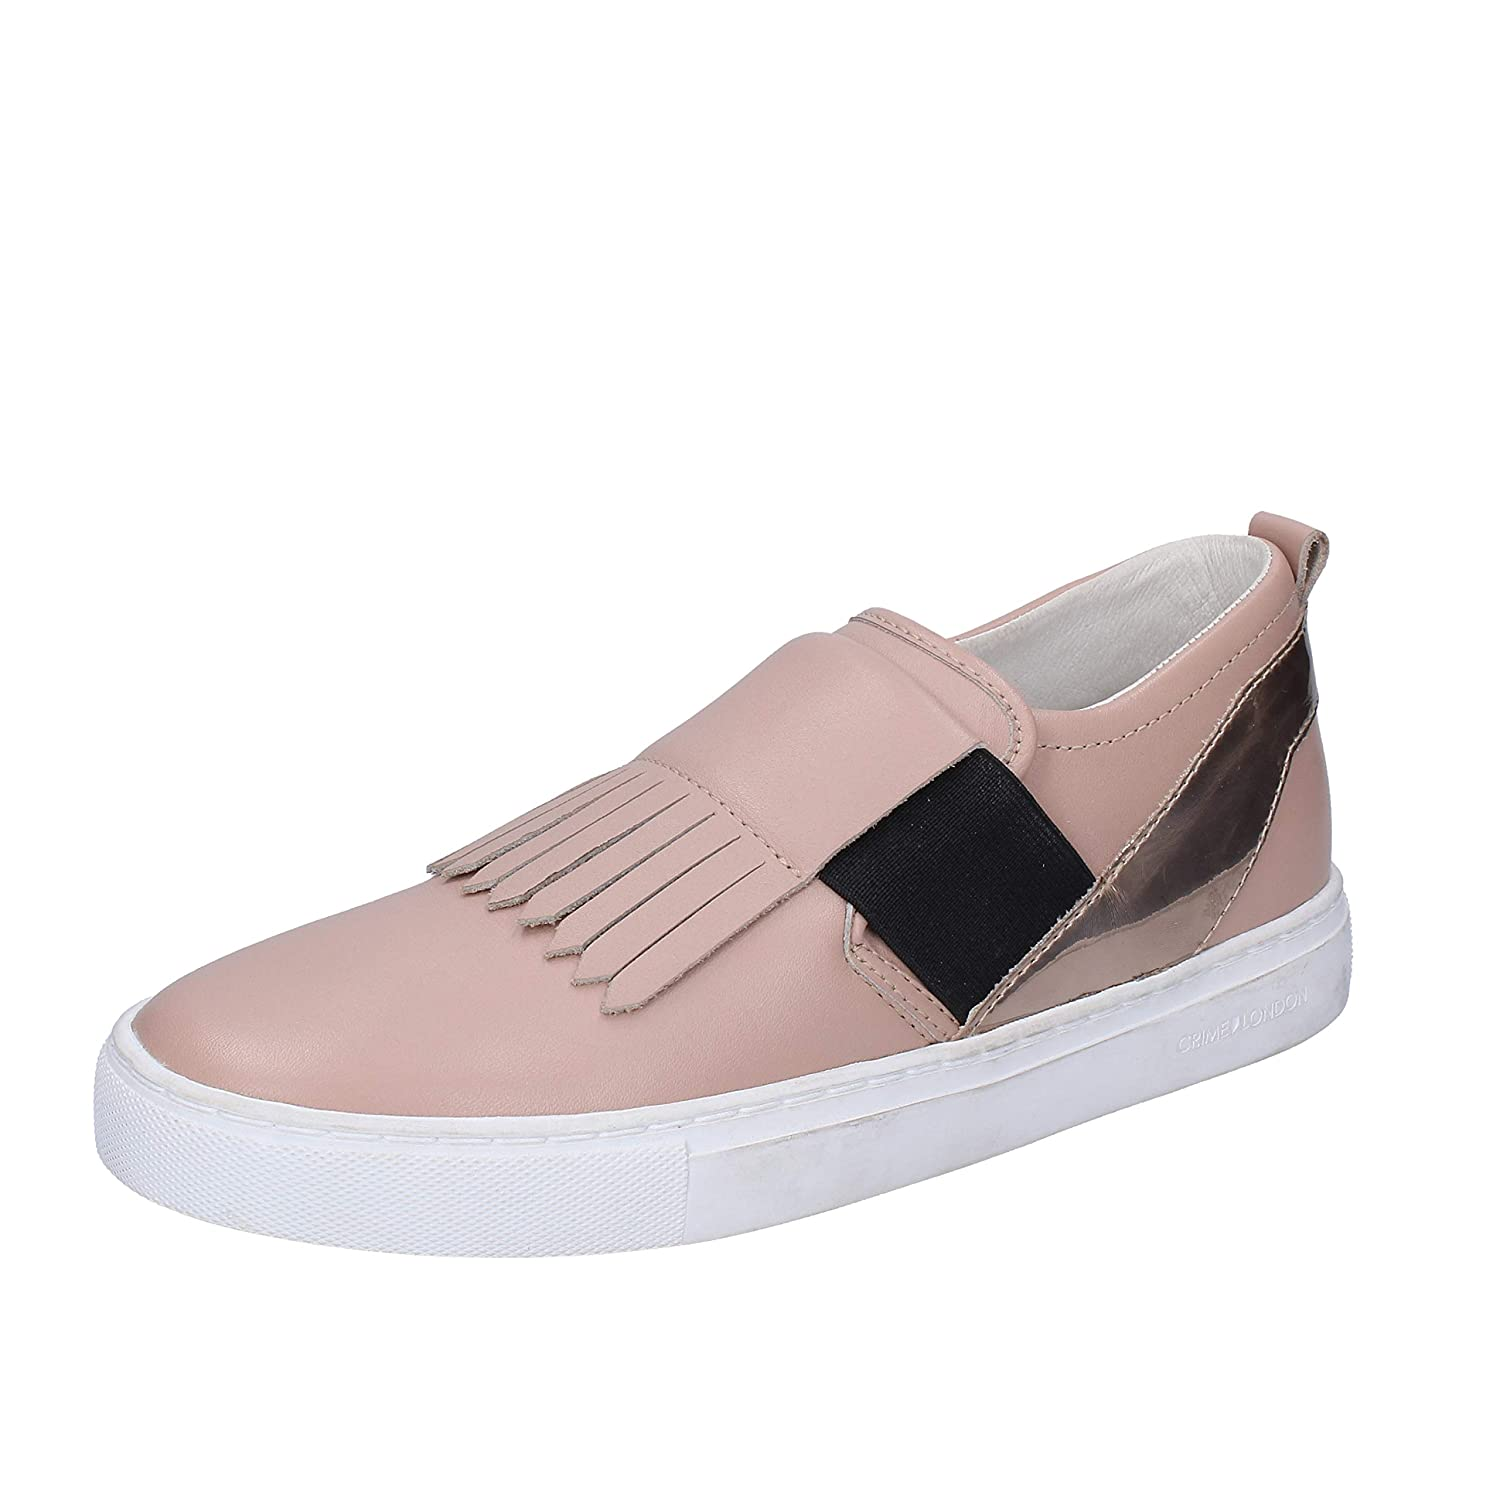 Crime London Mocassini Slip On Donna Pelle Beige (Nude) 37 EU -